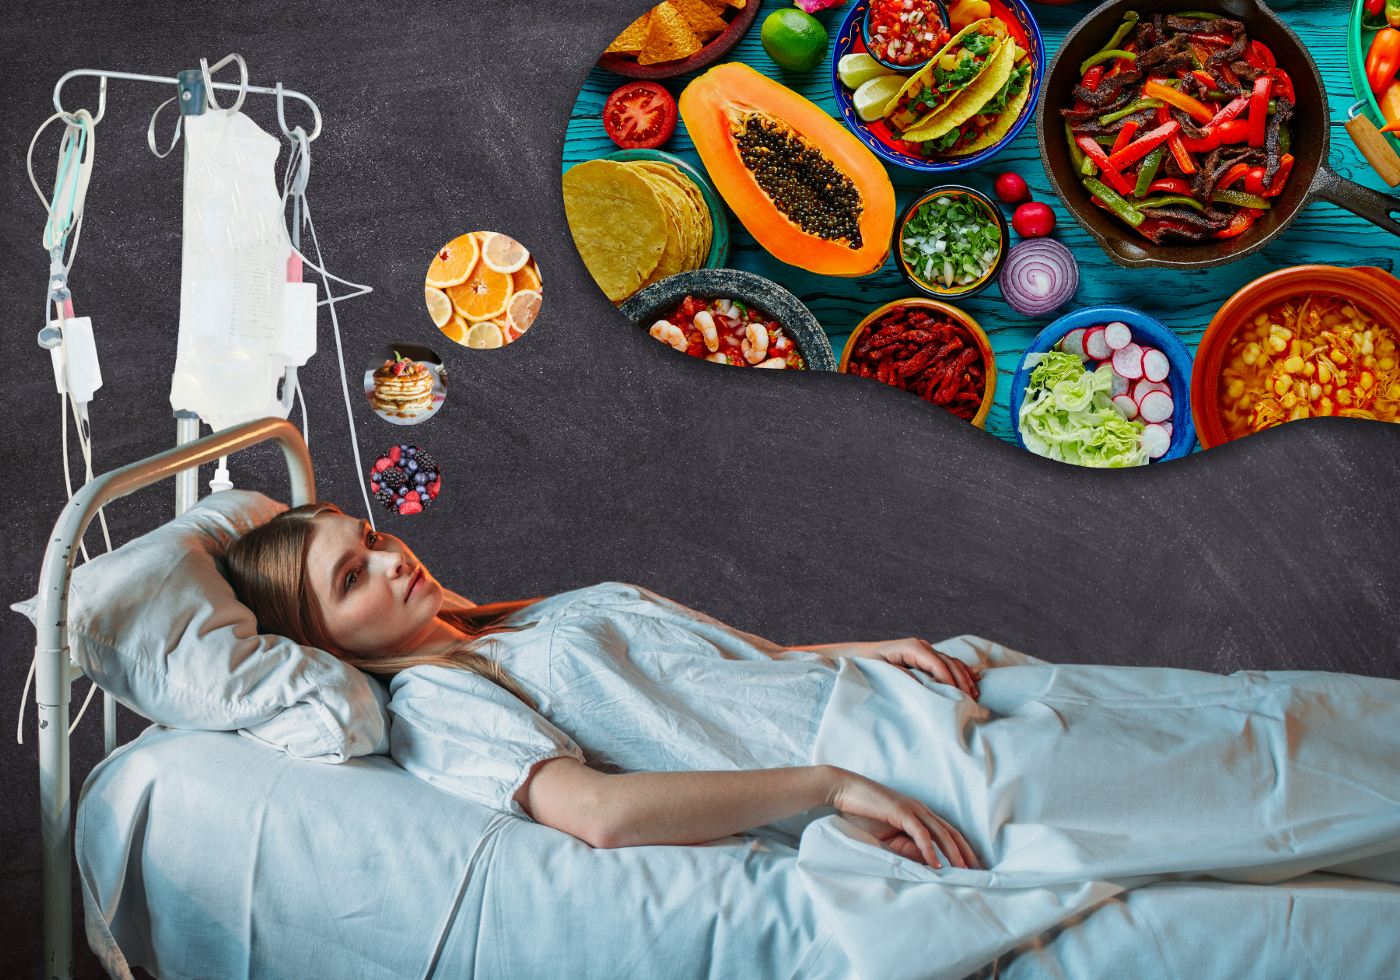 A young woman lies in a hospital bed with an IV pole behind her. She is dreaming of all kinds of food, demonstrated by a thought bubble filled with foods like tacos, pancakes, fruits, meat dishes and vegetables.